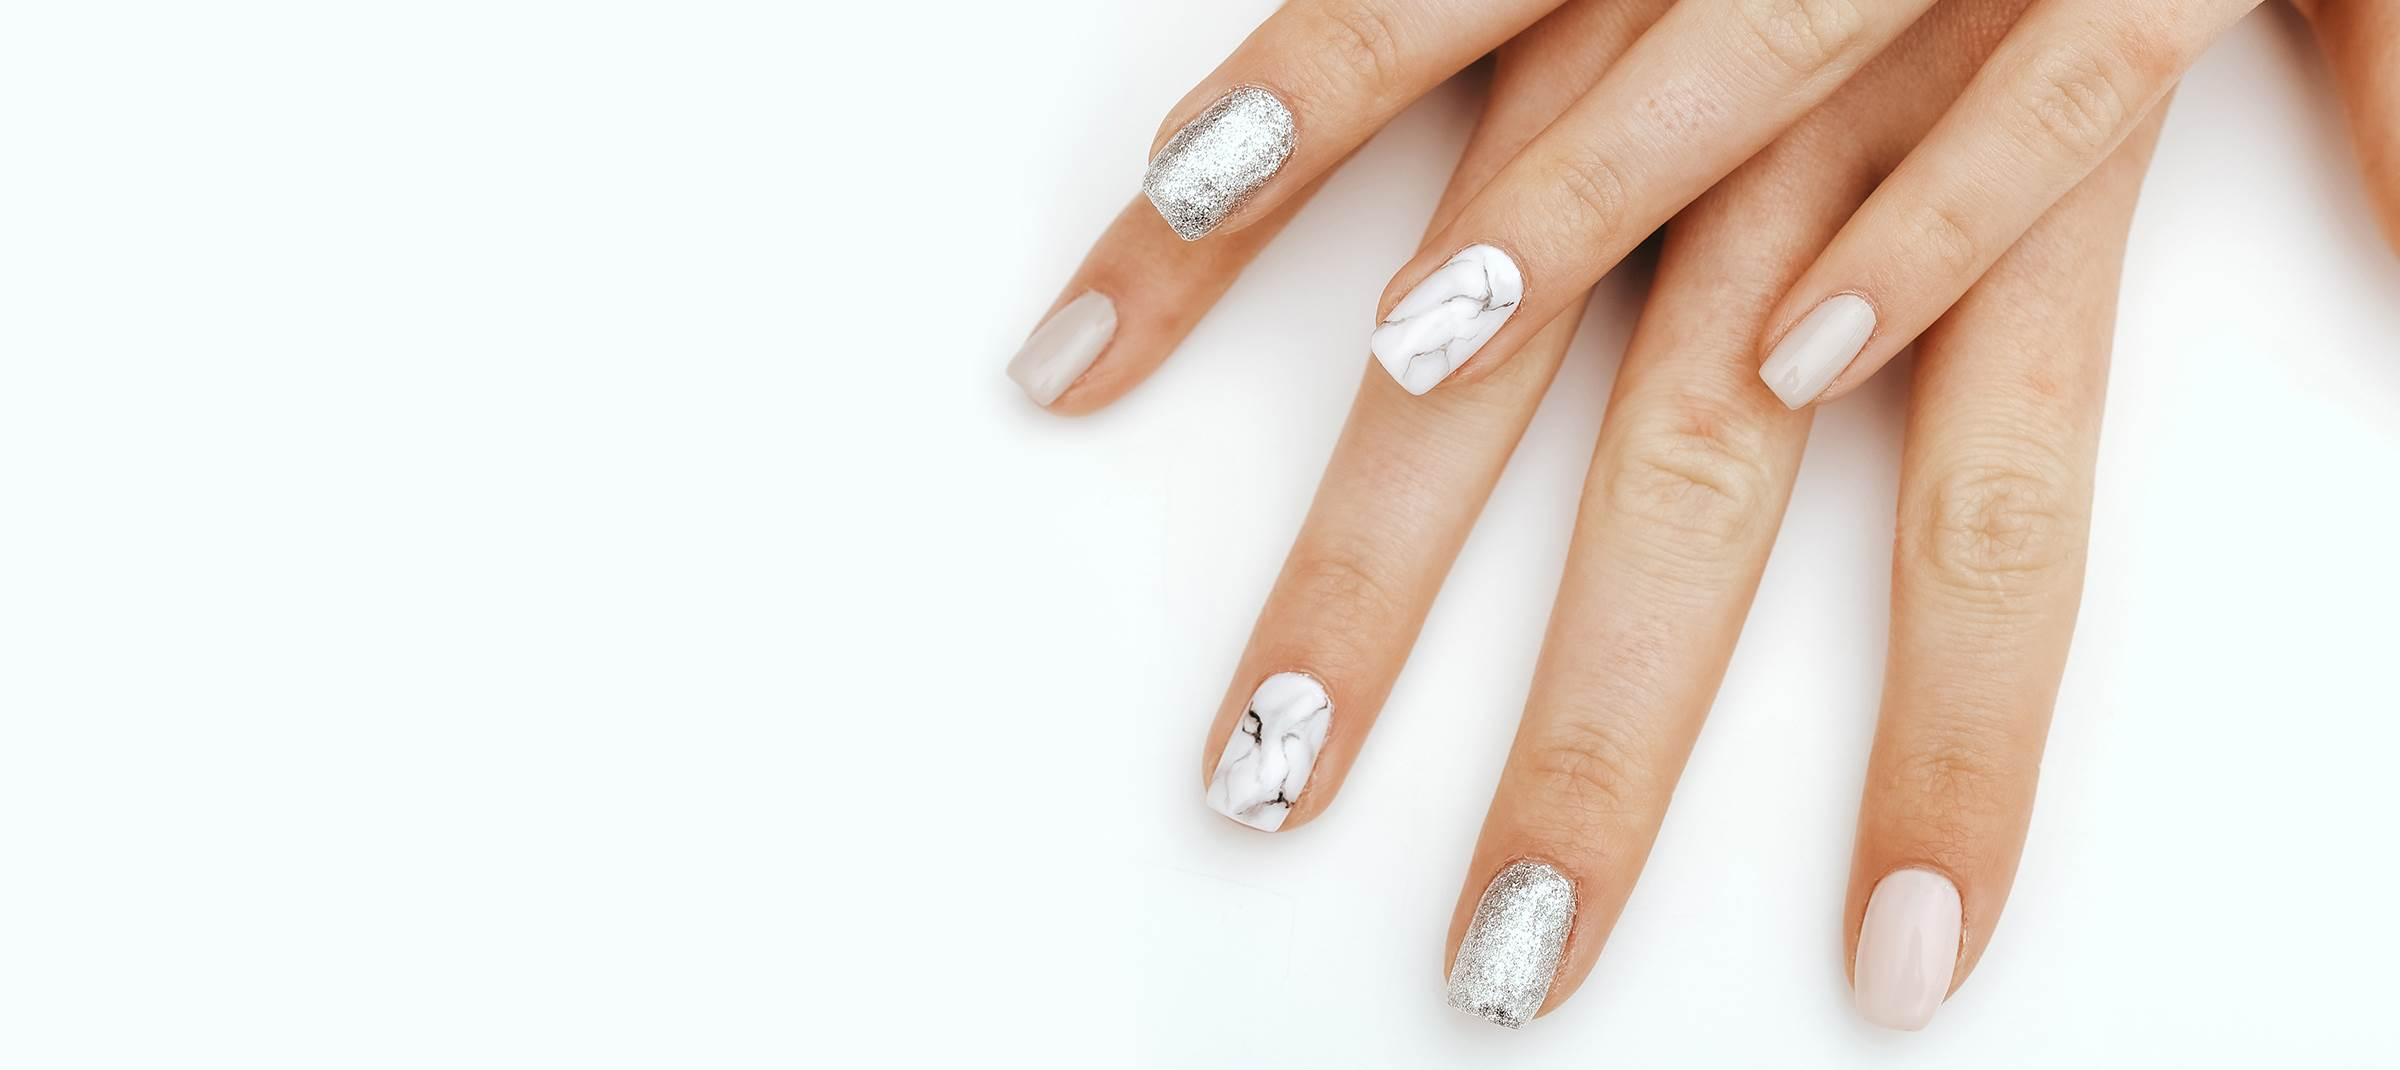 Camelot manicure in Port Alfred